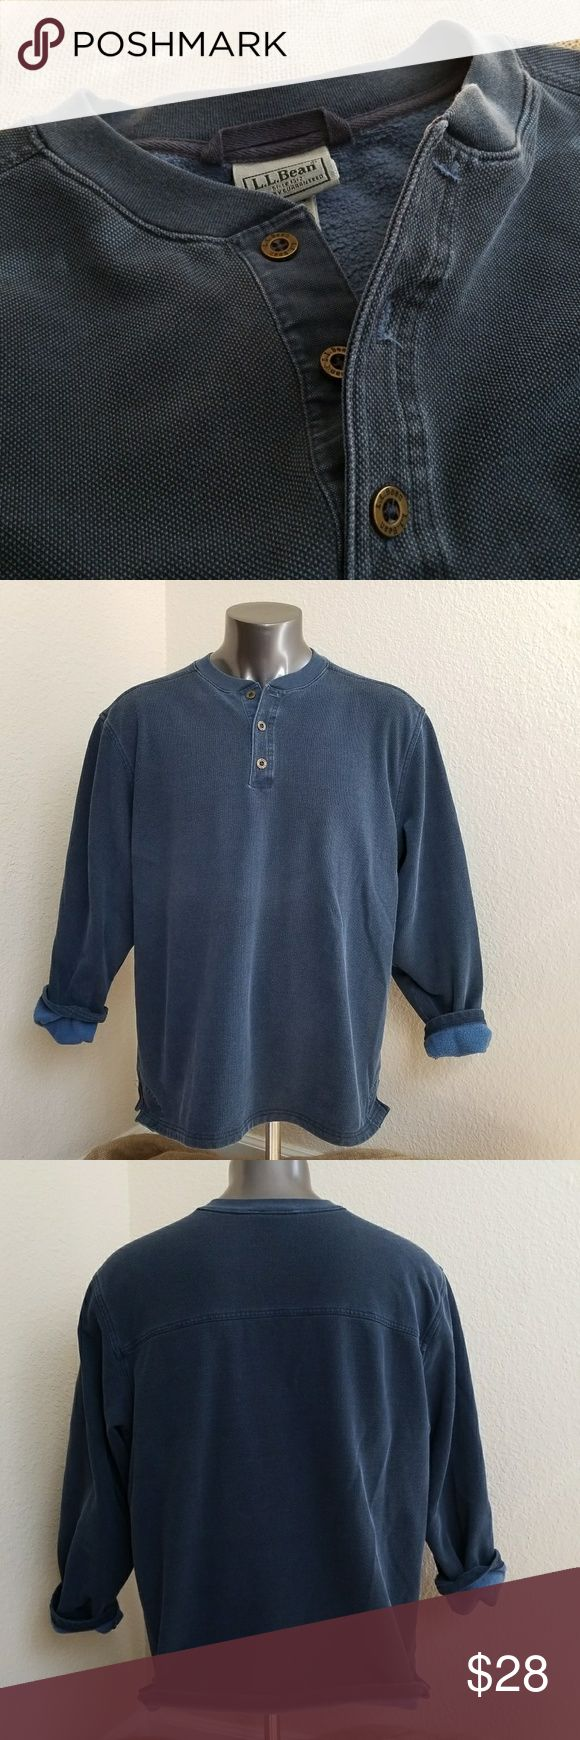 """Vintage LL Bean Fleece Lined Long Sleeve Shirt Men's L.L. Bean Vintage Crewneck Polo Shirt Long Sleeve  Fully lined with Soft Fleece. The entire inside is fleece lined including sleeves Navy Blue canvas type fabric  Men's size XL - Reg Measurements: Chest (Armpit to Armpit): 26"""" Length: 27"""" Sleeve: 24"""" Great condition   KW: Work, Hiking, Fishing, Outdoors L.L. Bean Shirts Polos"""